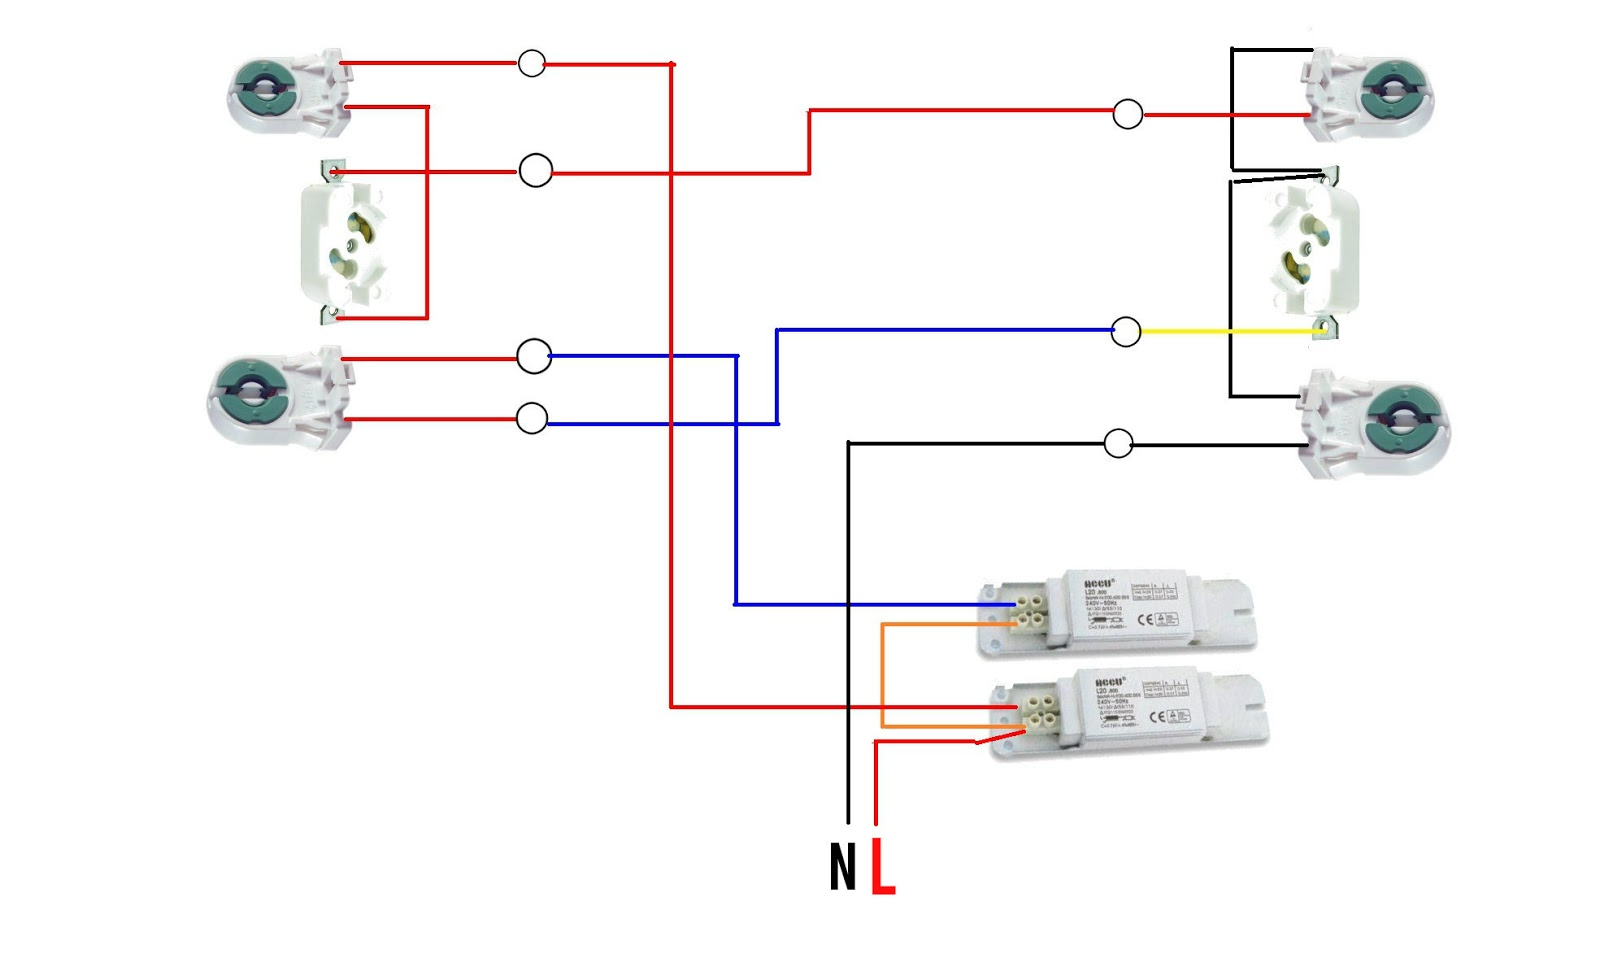 wiring fluorescent lights in series wiring diagram navwiring fluorescent lights wiring diagram nav wiring fluorescent lights [ 1600 x 976 Pixel ]